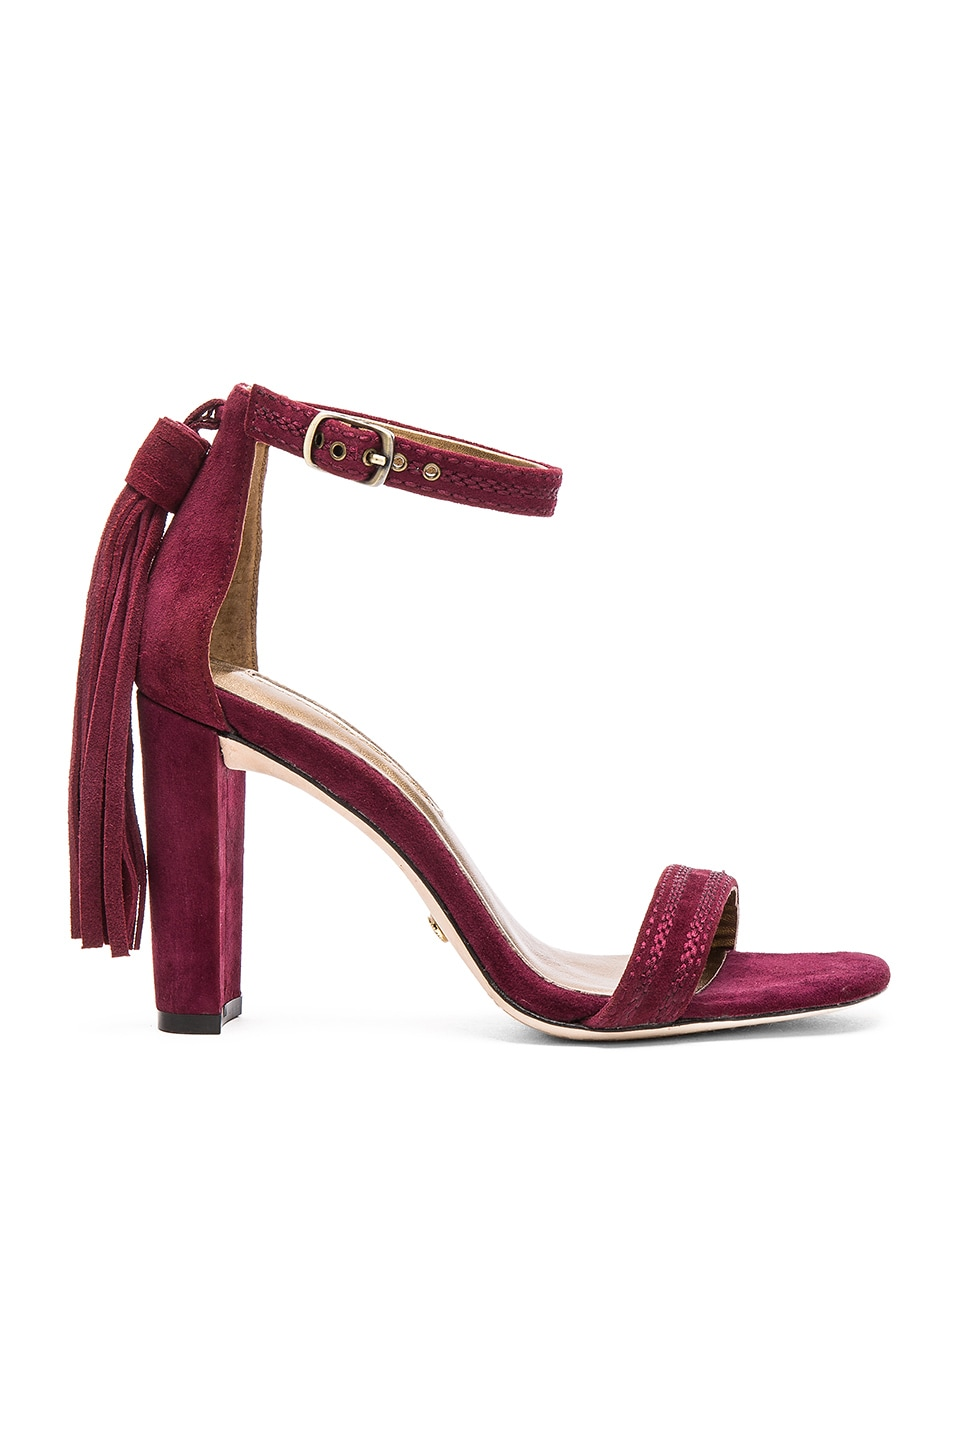 Twelfth Street By Cynthia Vincent Walter Heel in Burgundy